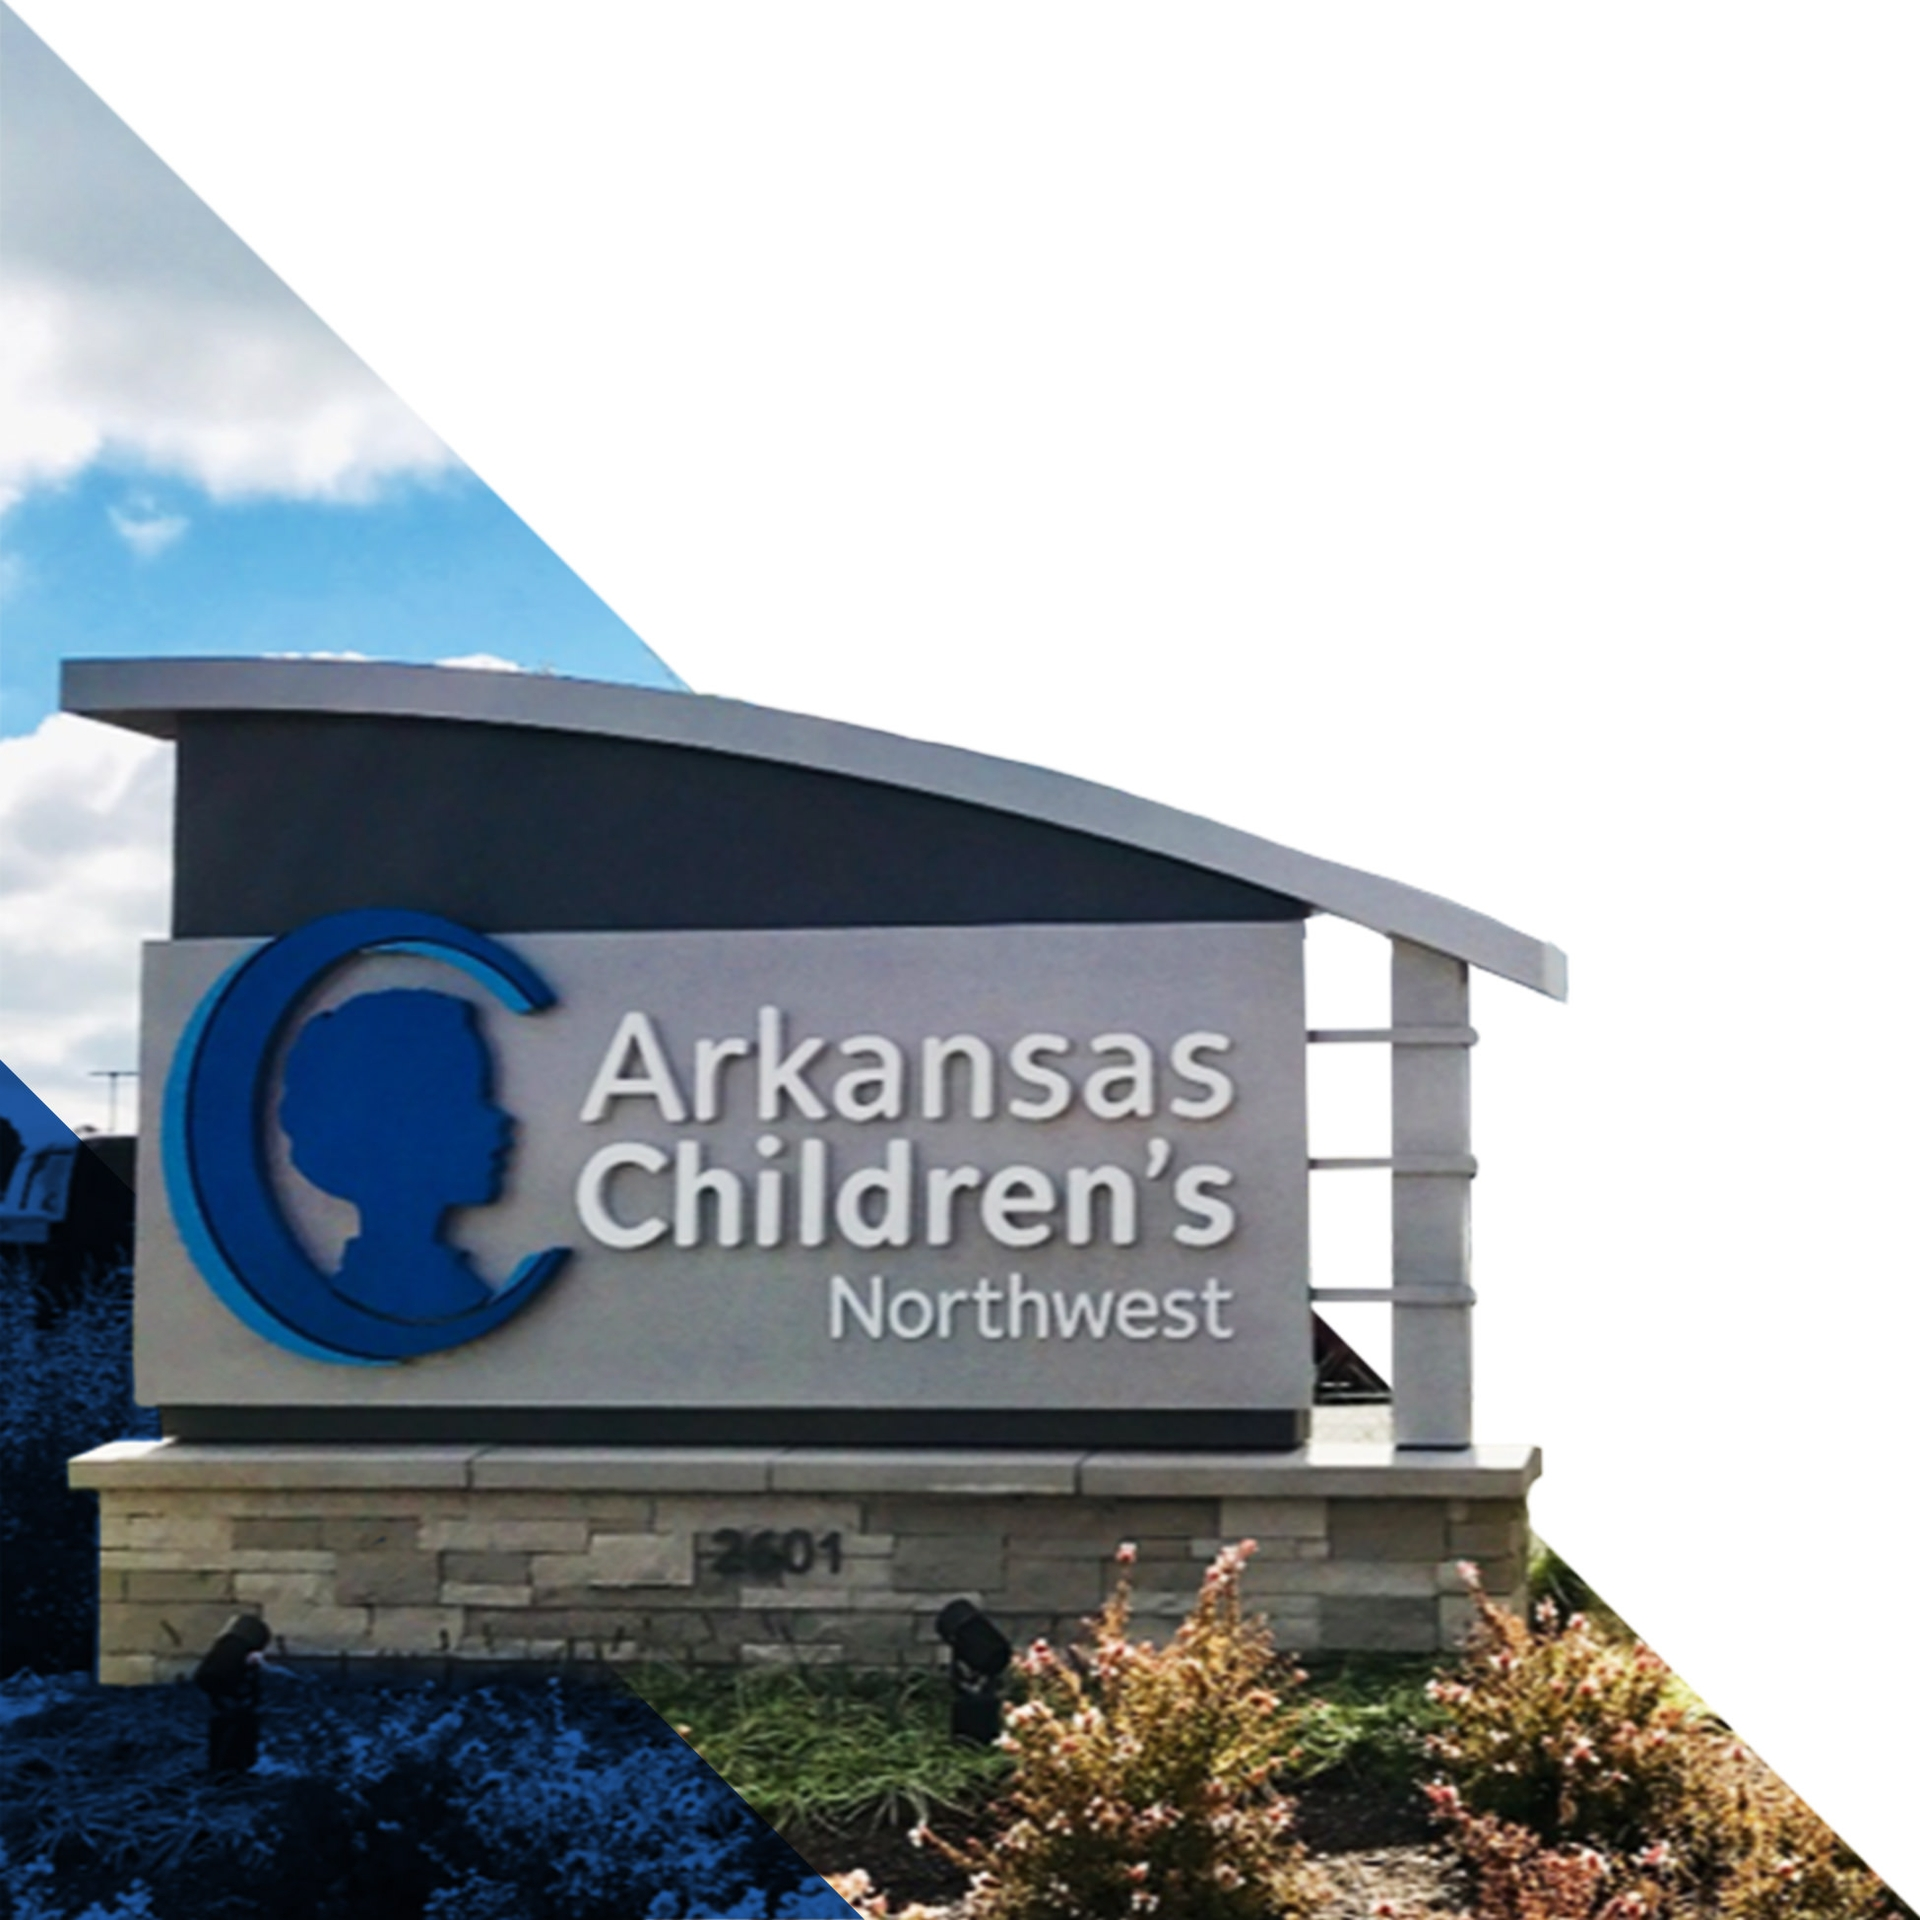 Arkansas Children's Hospital welcome sign.